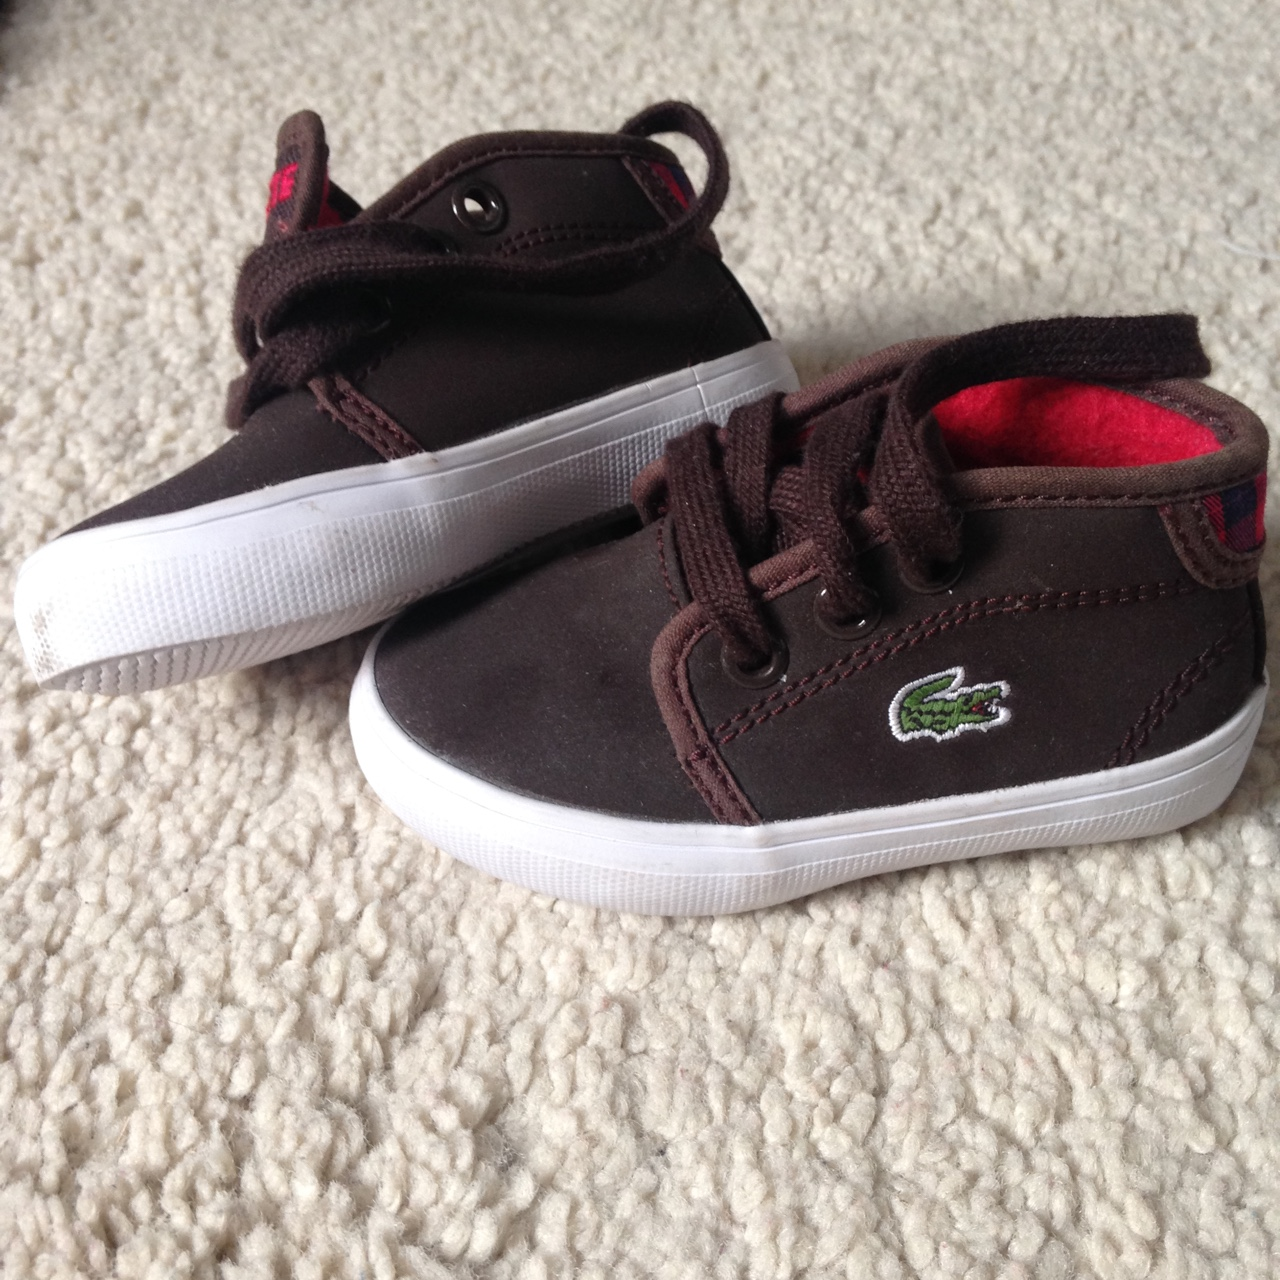 Lacoste baby boy Shoes in Size UK 3